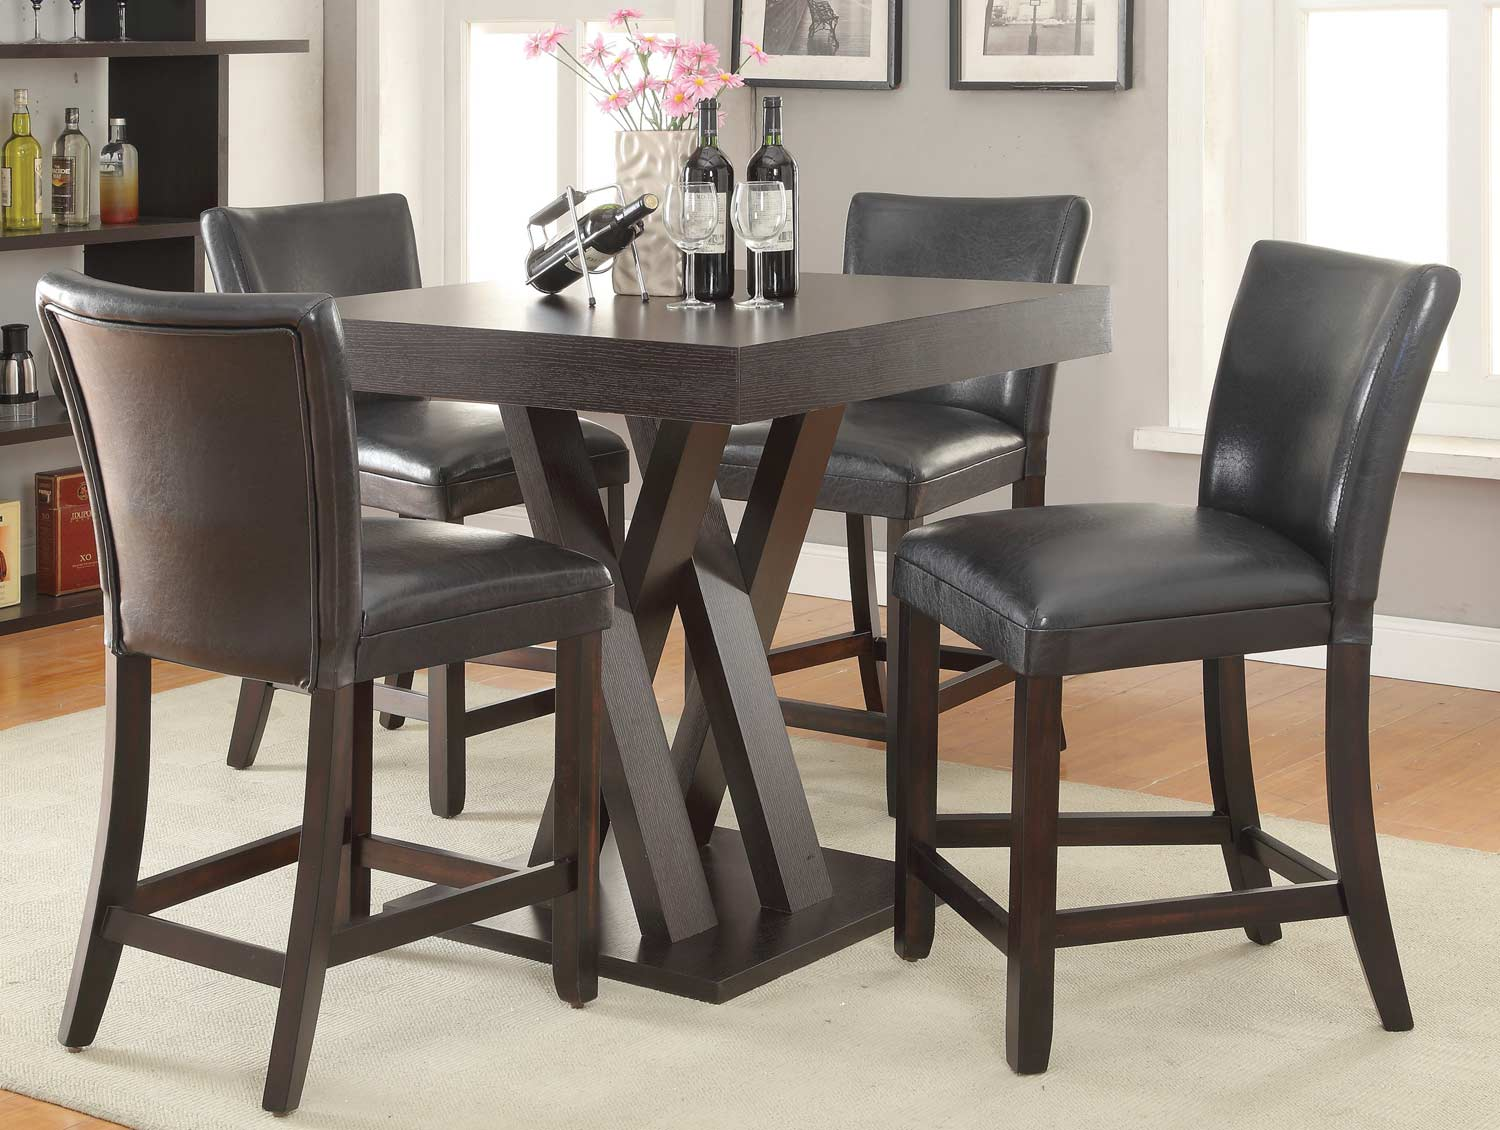 Coaster 100523 Counter Height Dining Set- Cappuccino